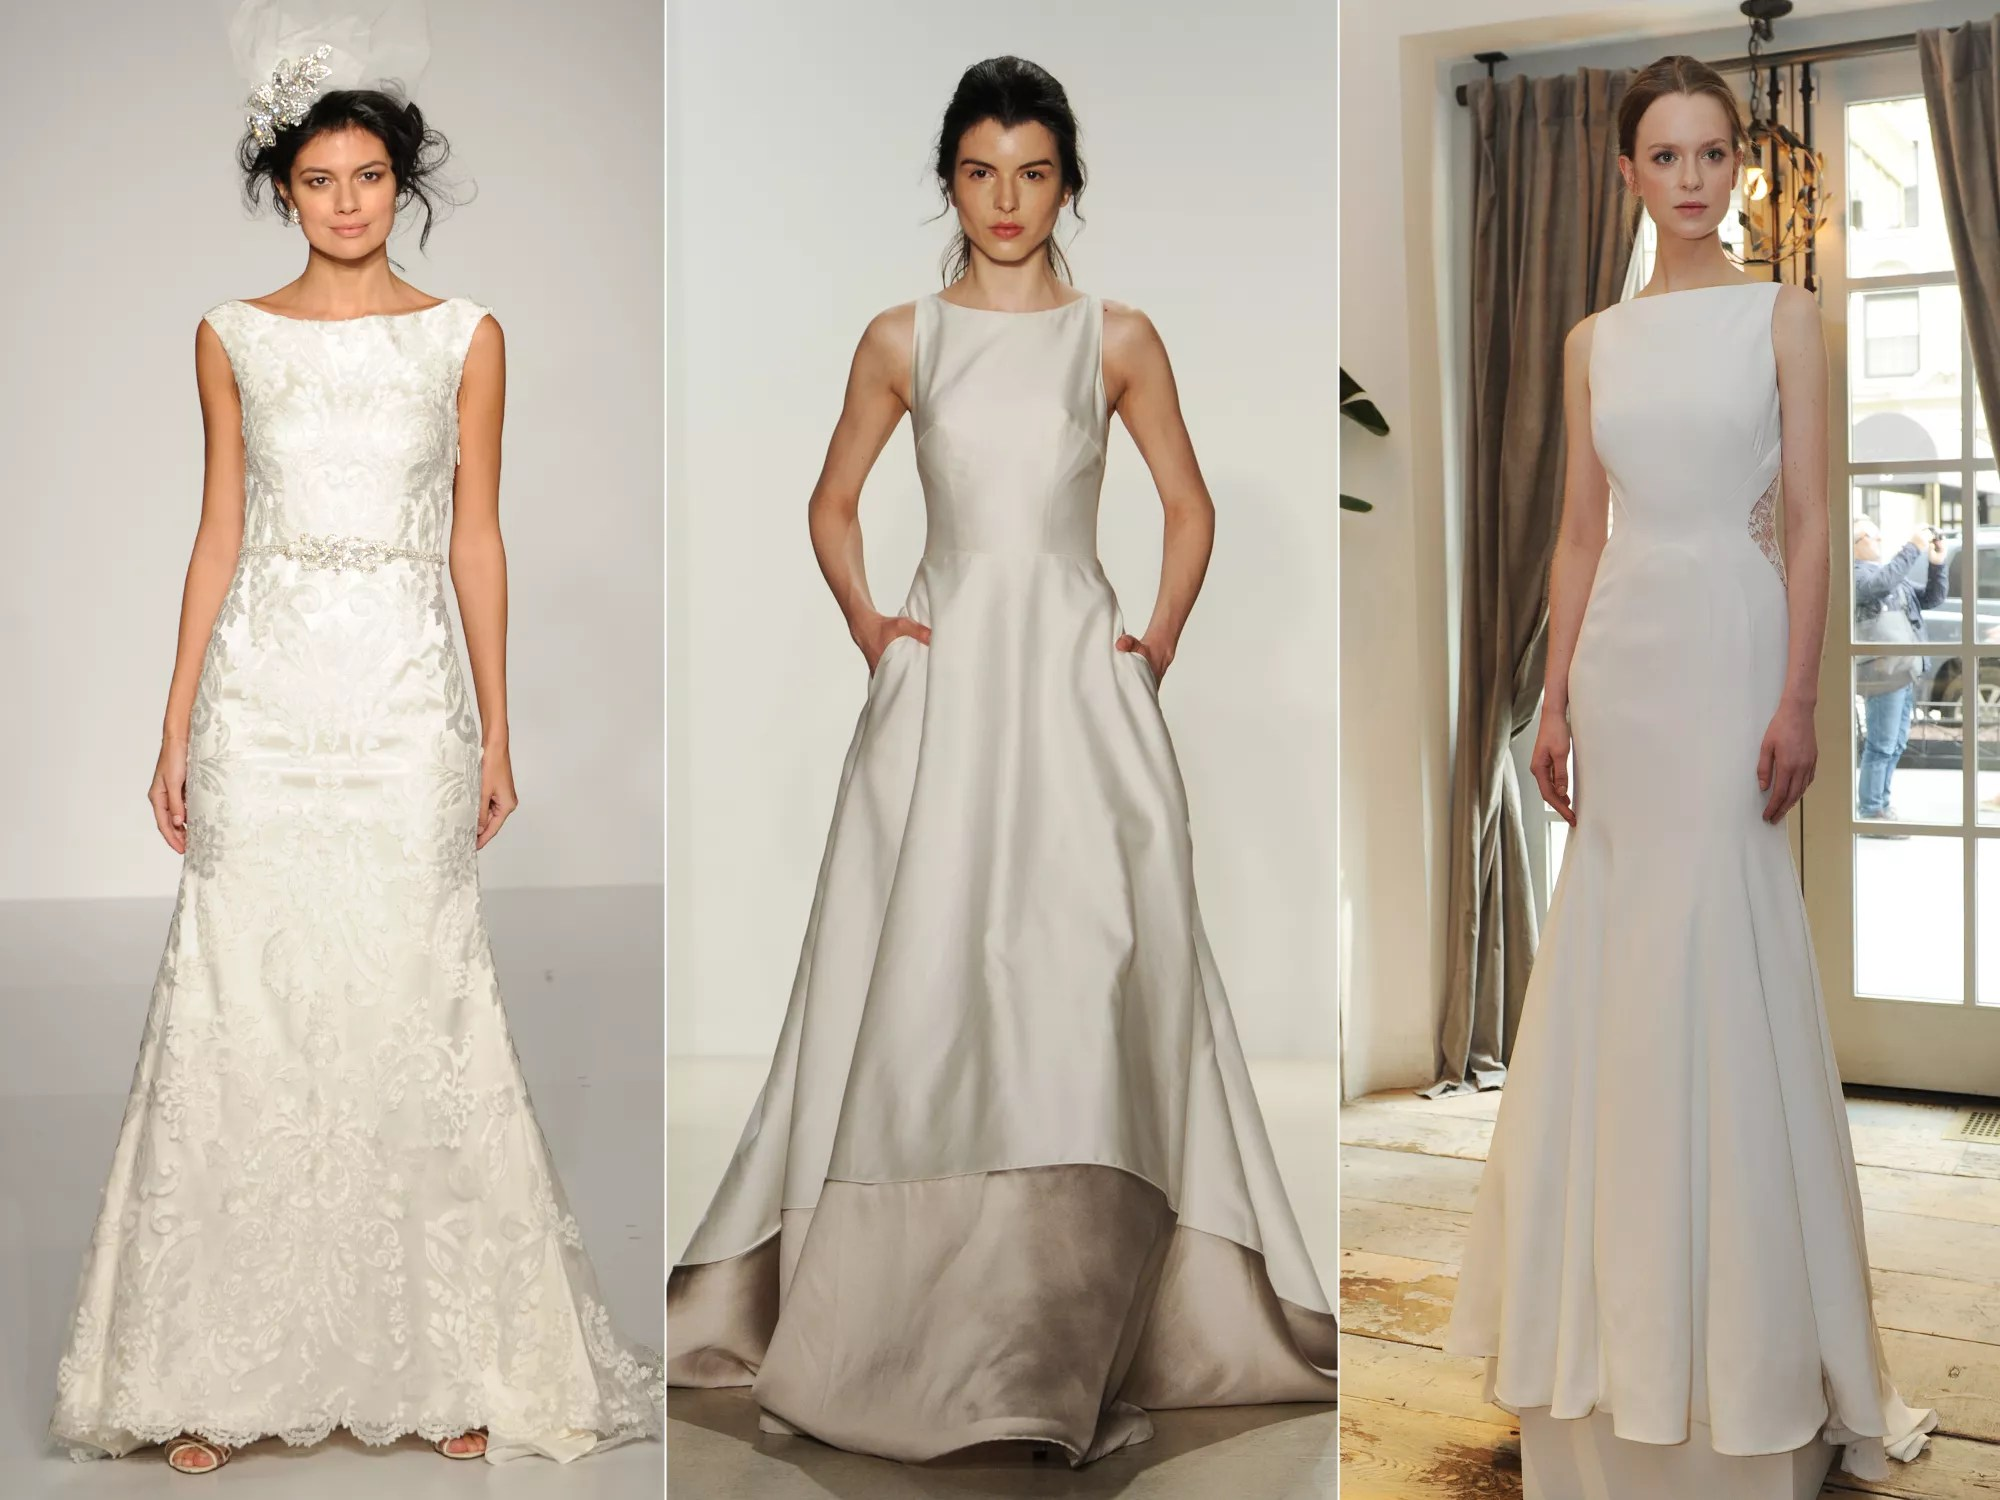 The Top Wedding Dress Trends from Spring 2016 Bridal